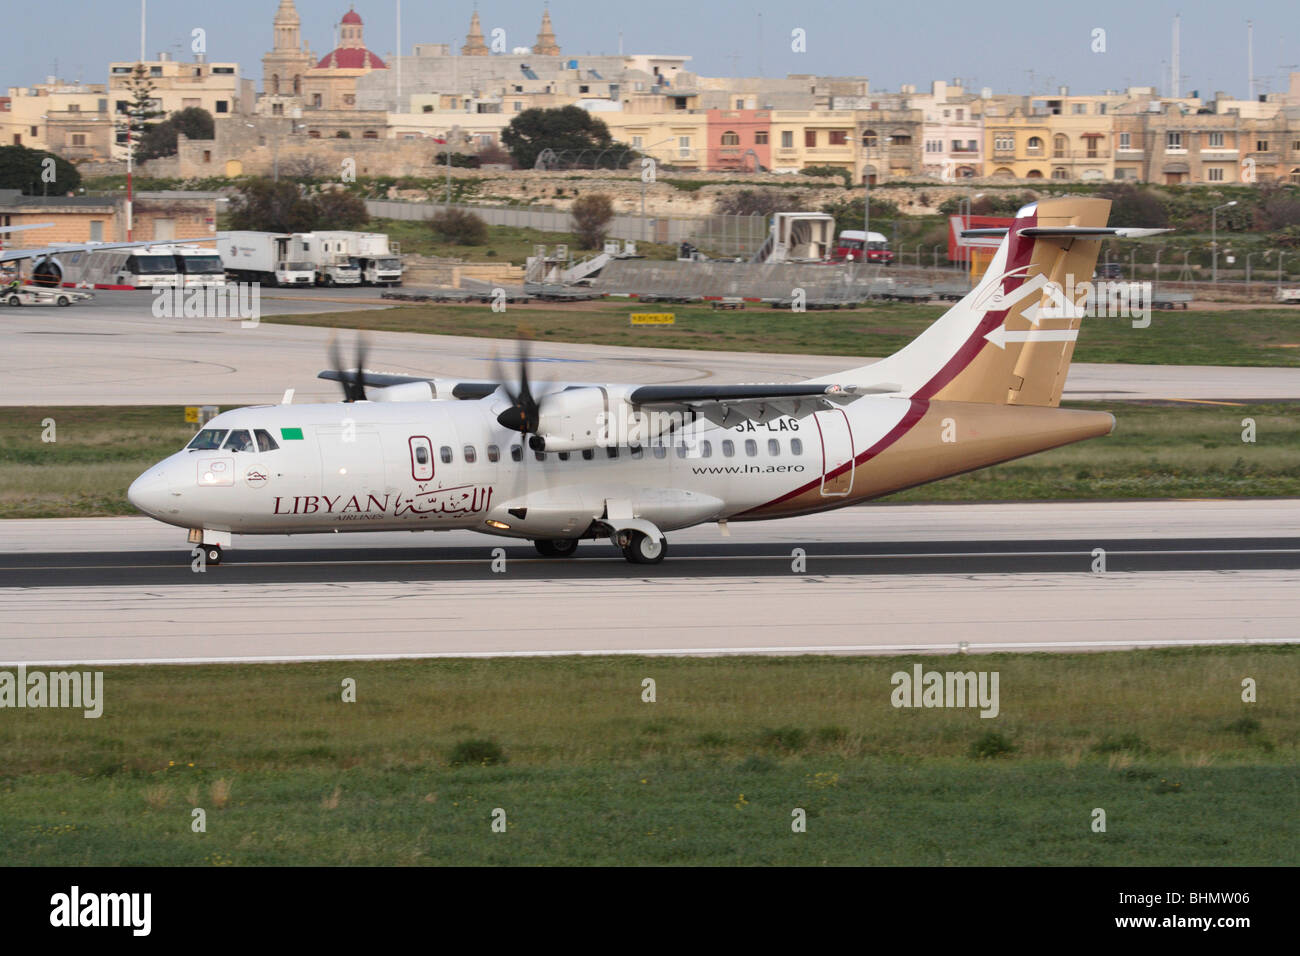 Libyan Airlines ATR 42-500 small turboprop passenger plane on the runway during takeoff from Malta - Stock Image